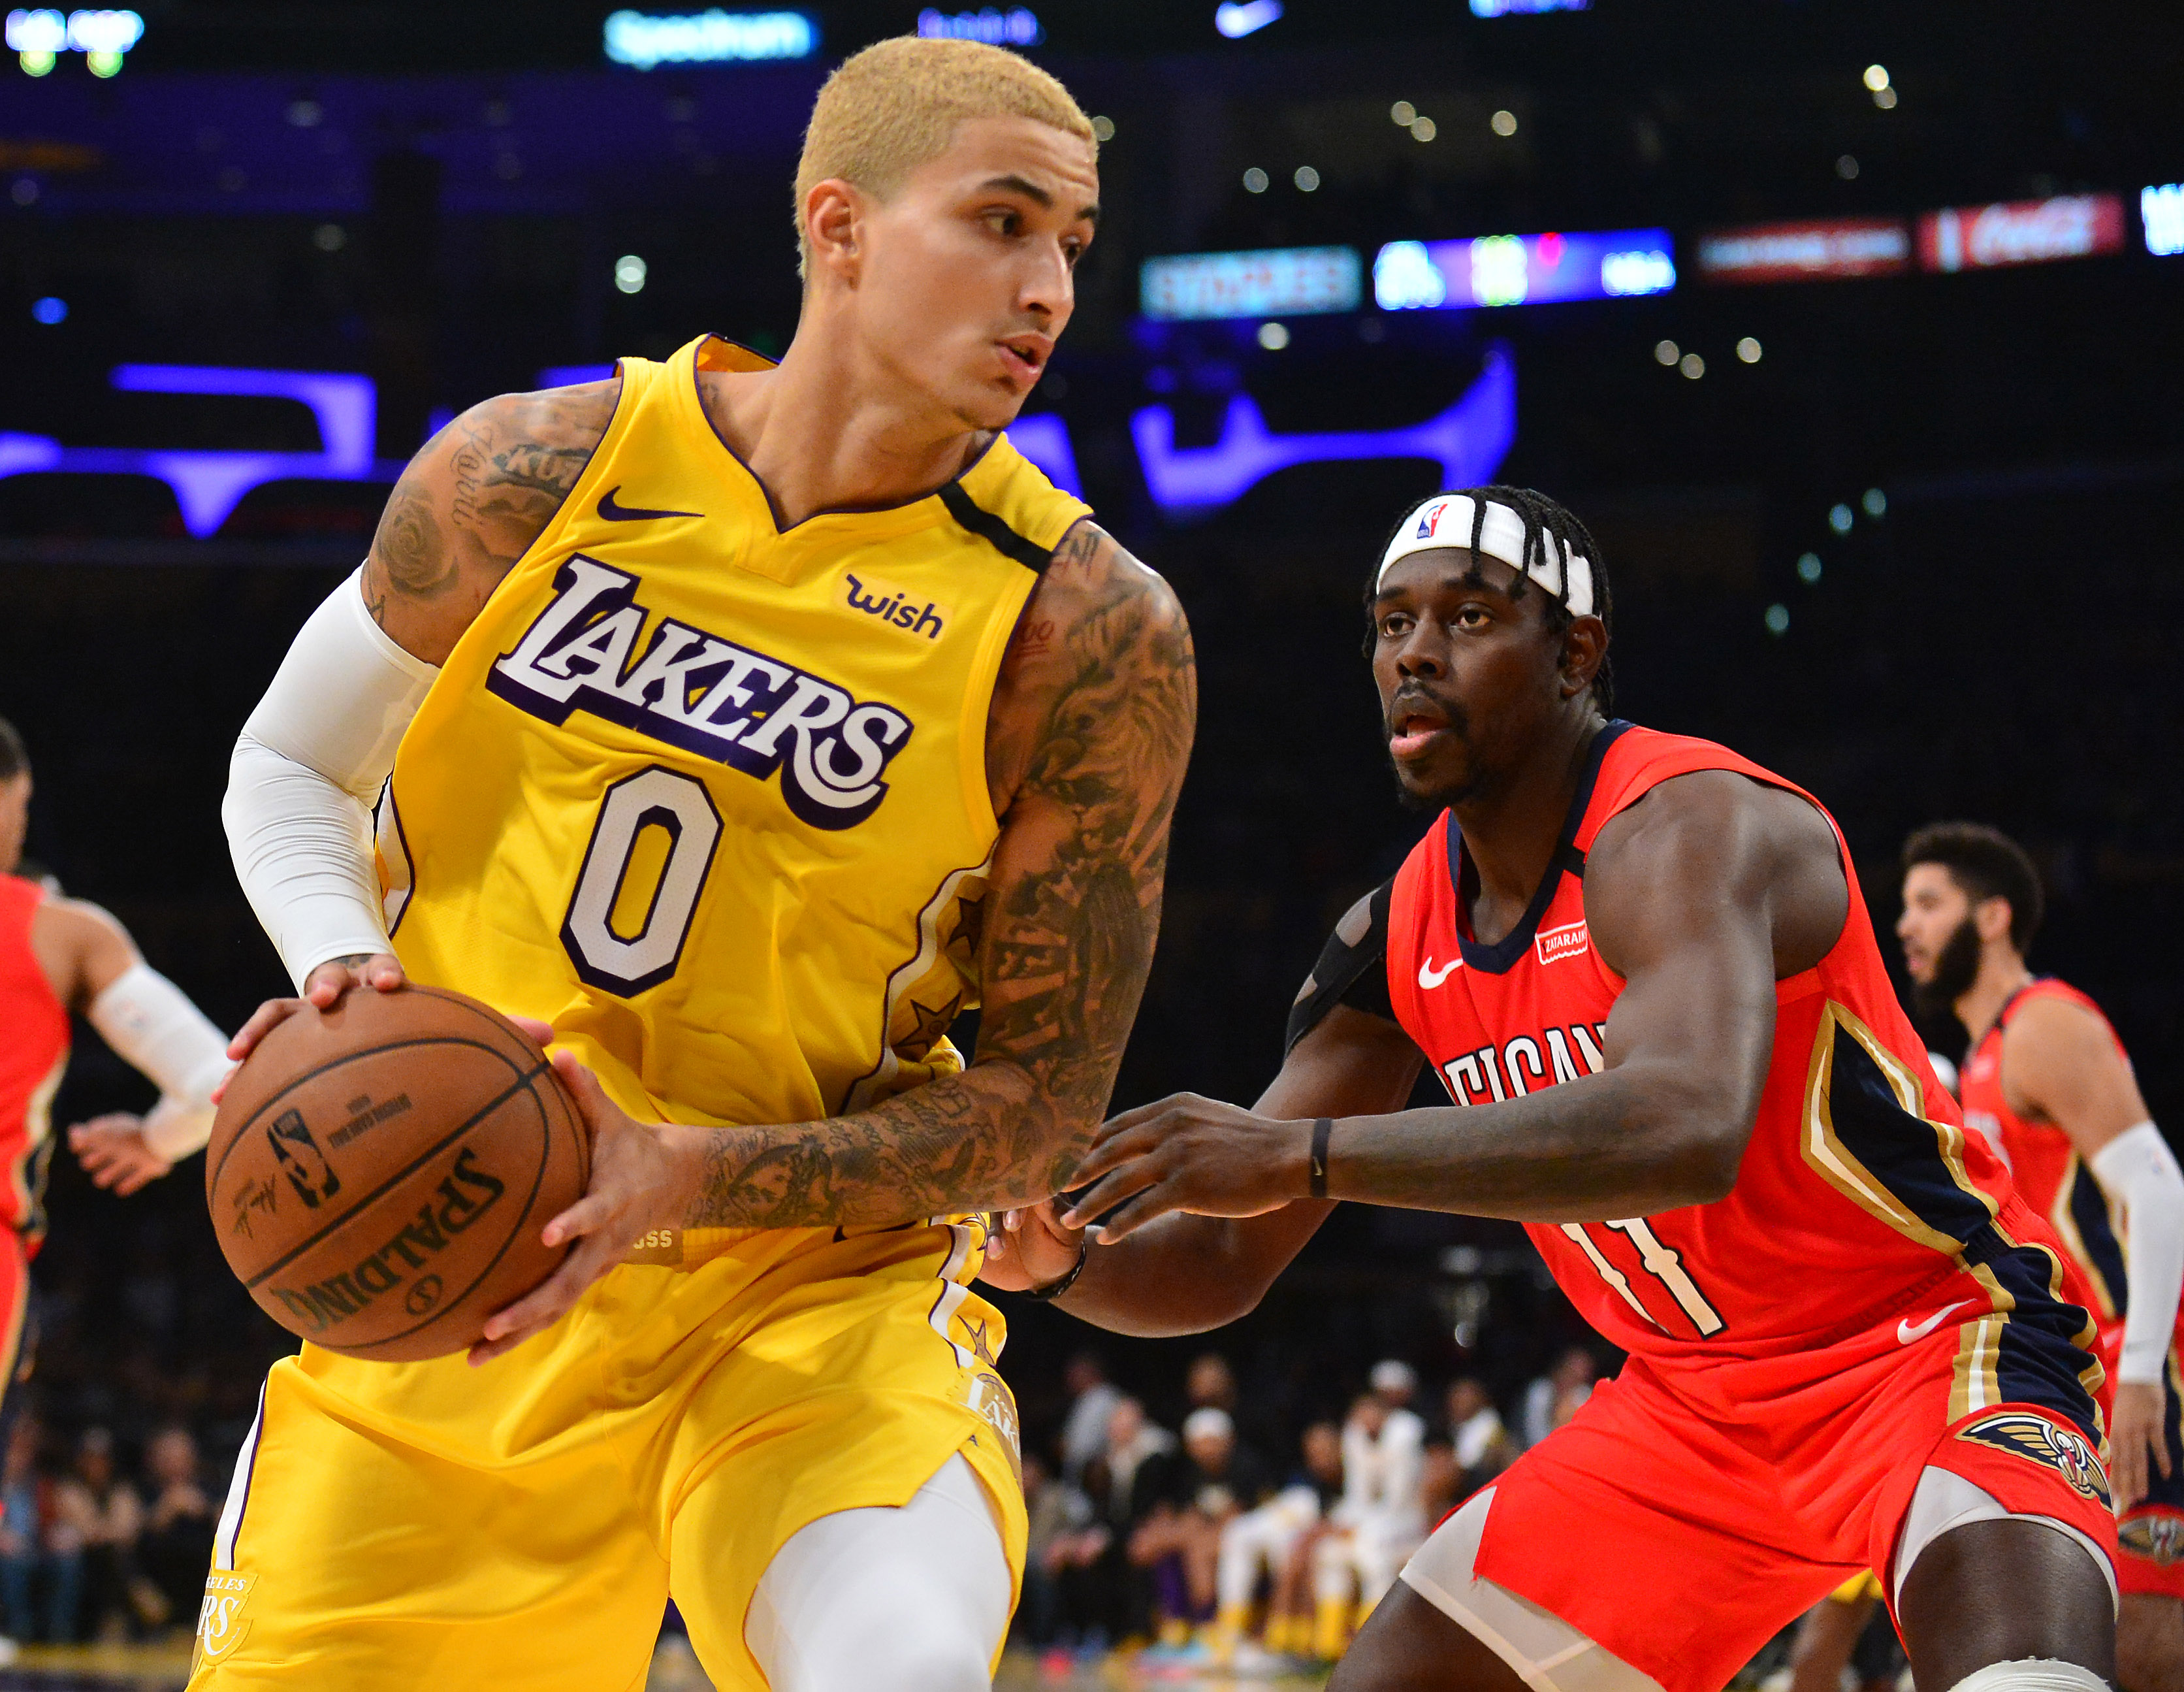 Lakers' Kyle Kuzma Seeking a 'Sizable' Contract This Offseason